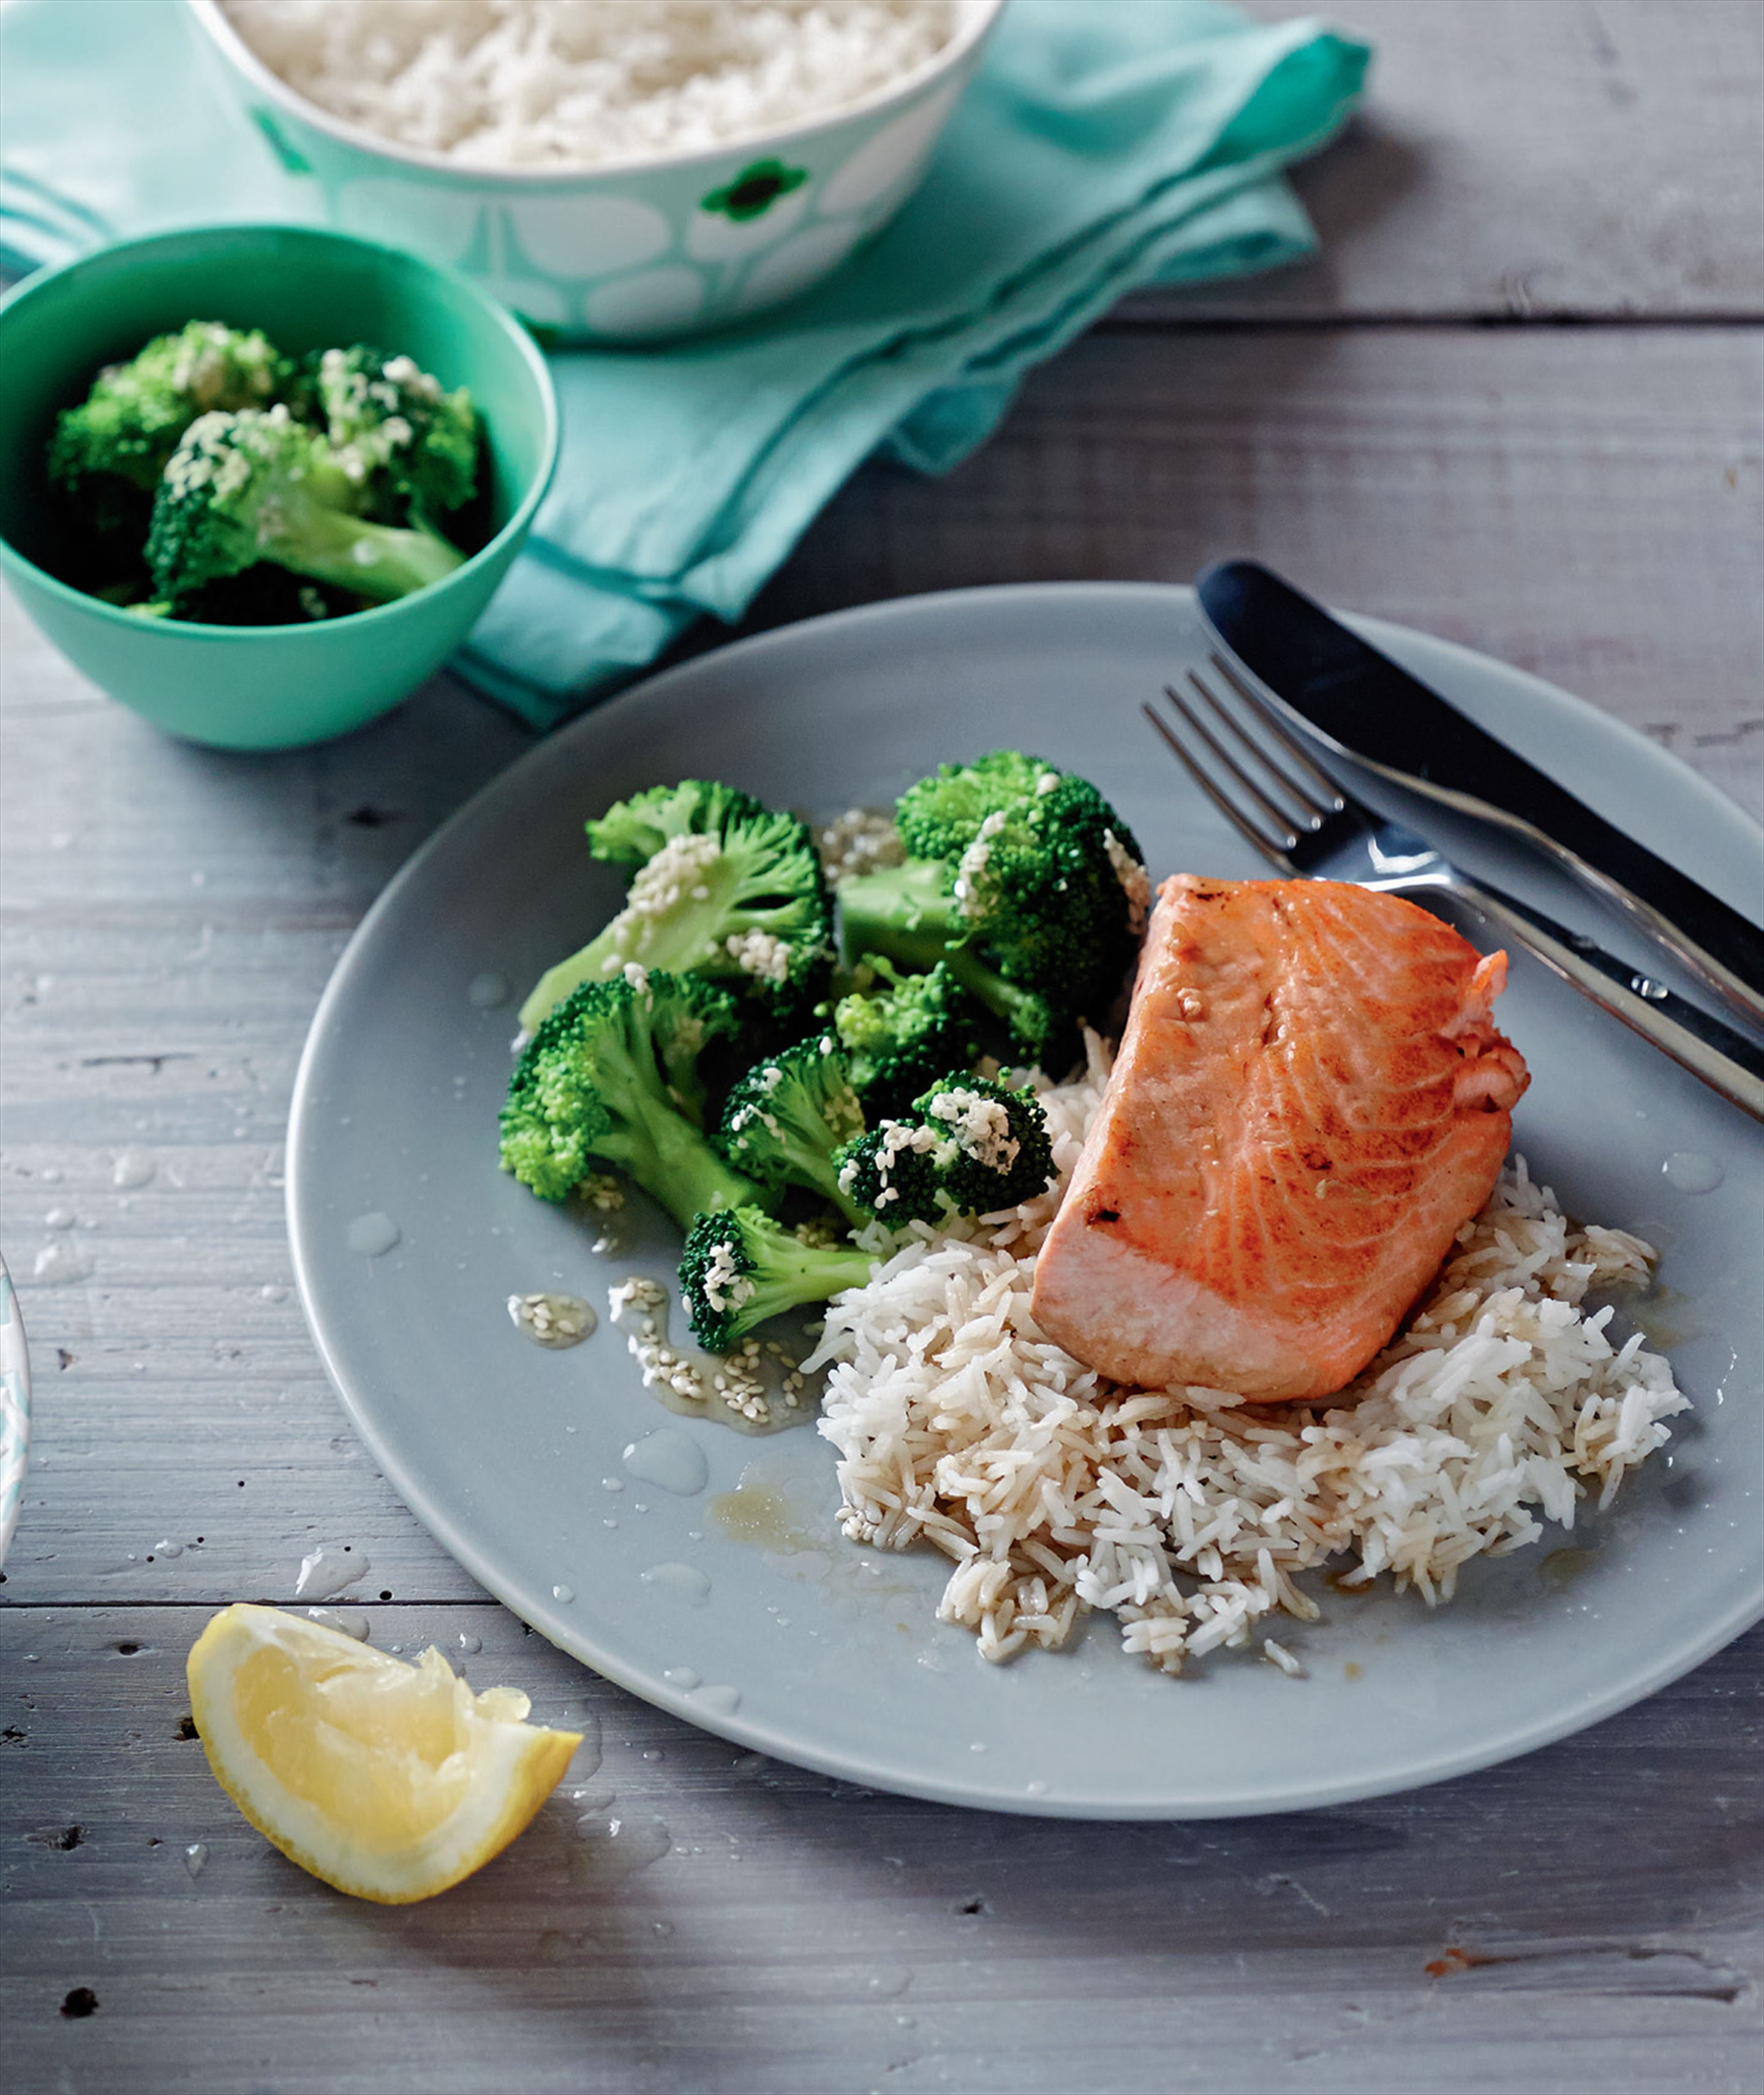 Tuckshop teriyaki salmon